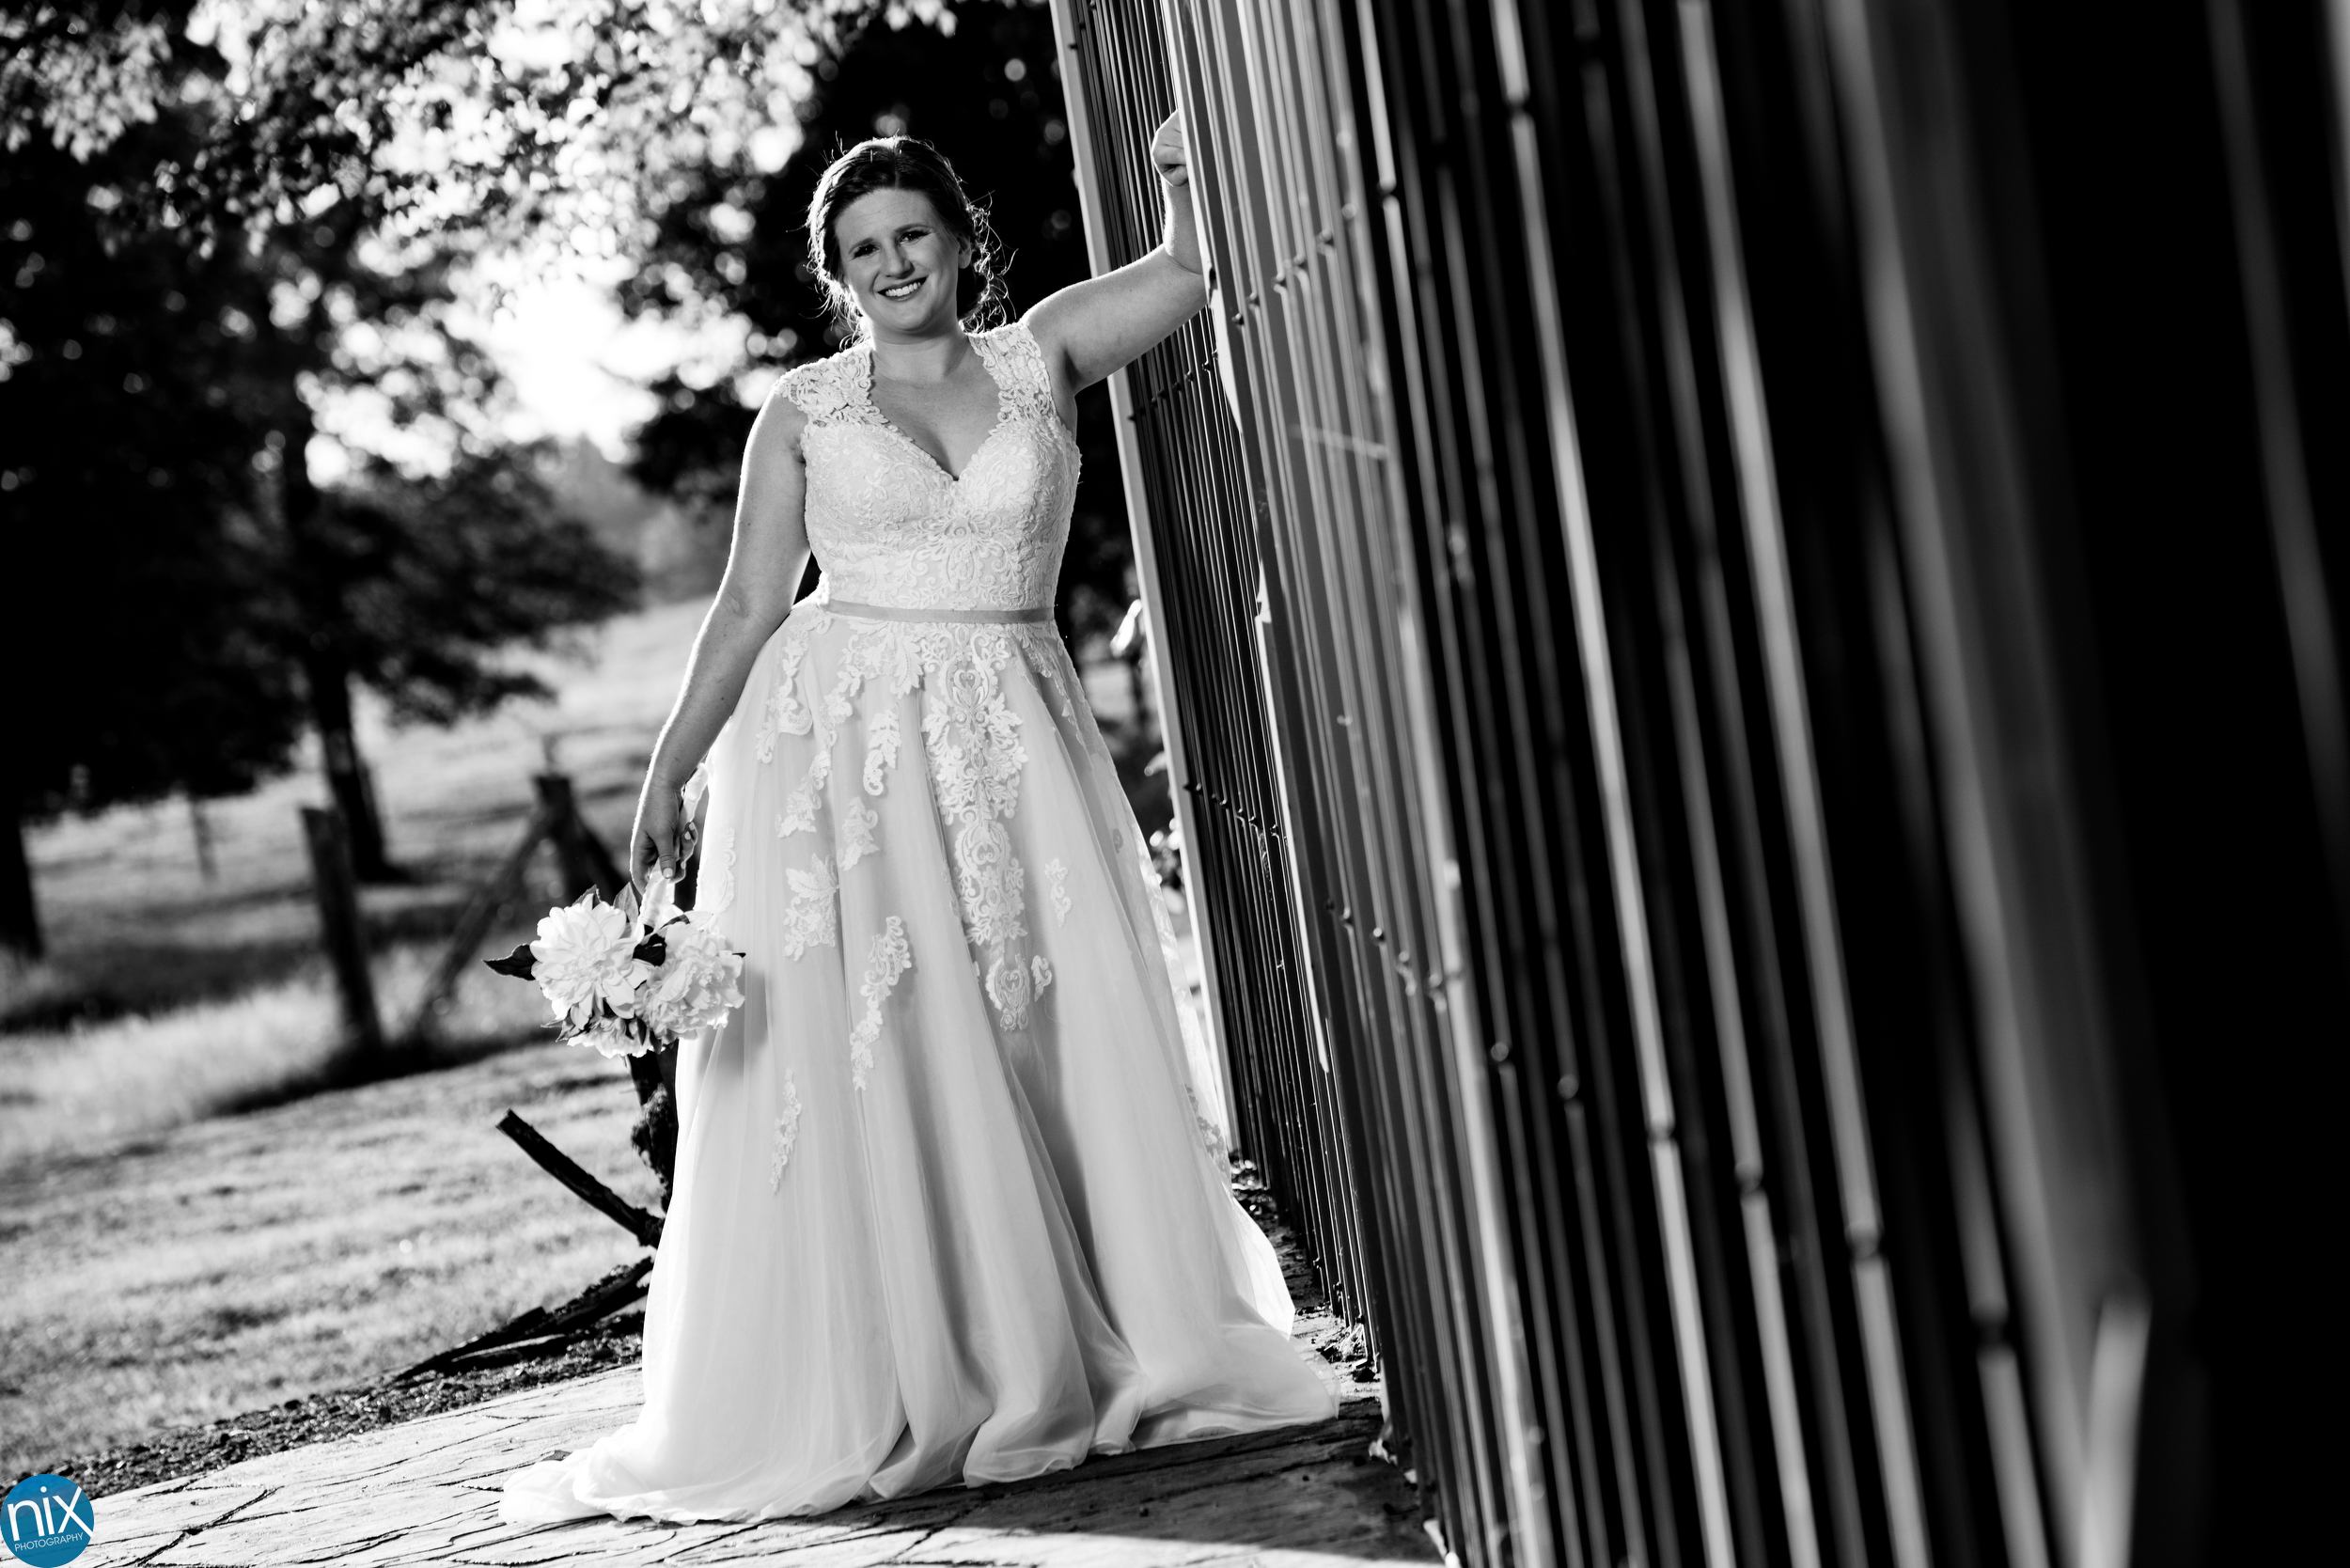 bridal photo in black and white.jpg